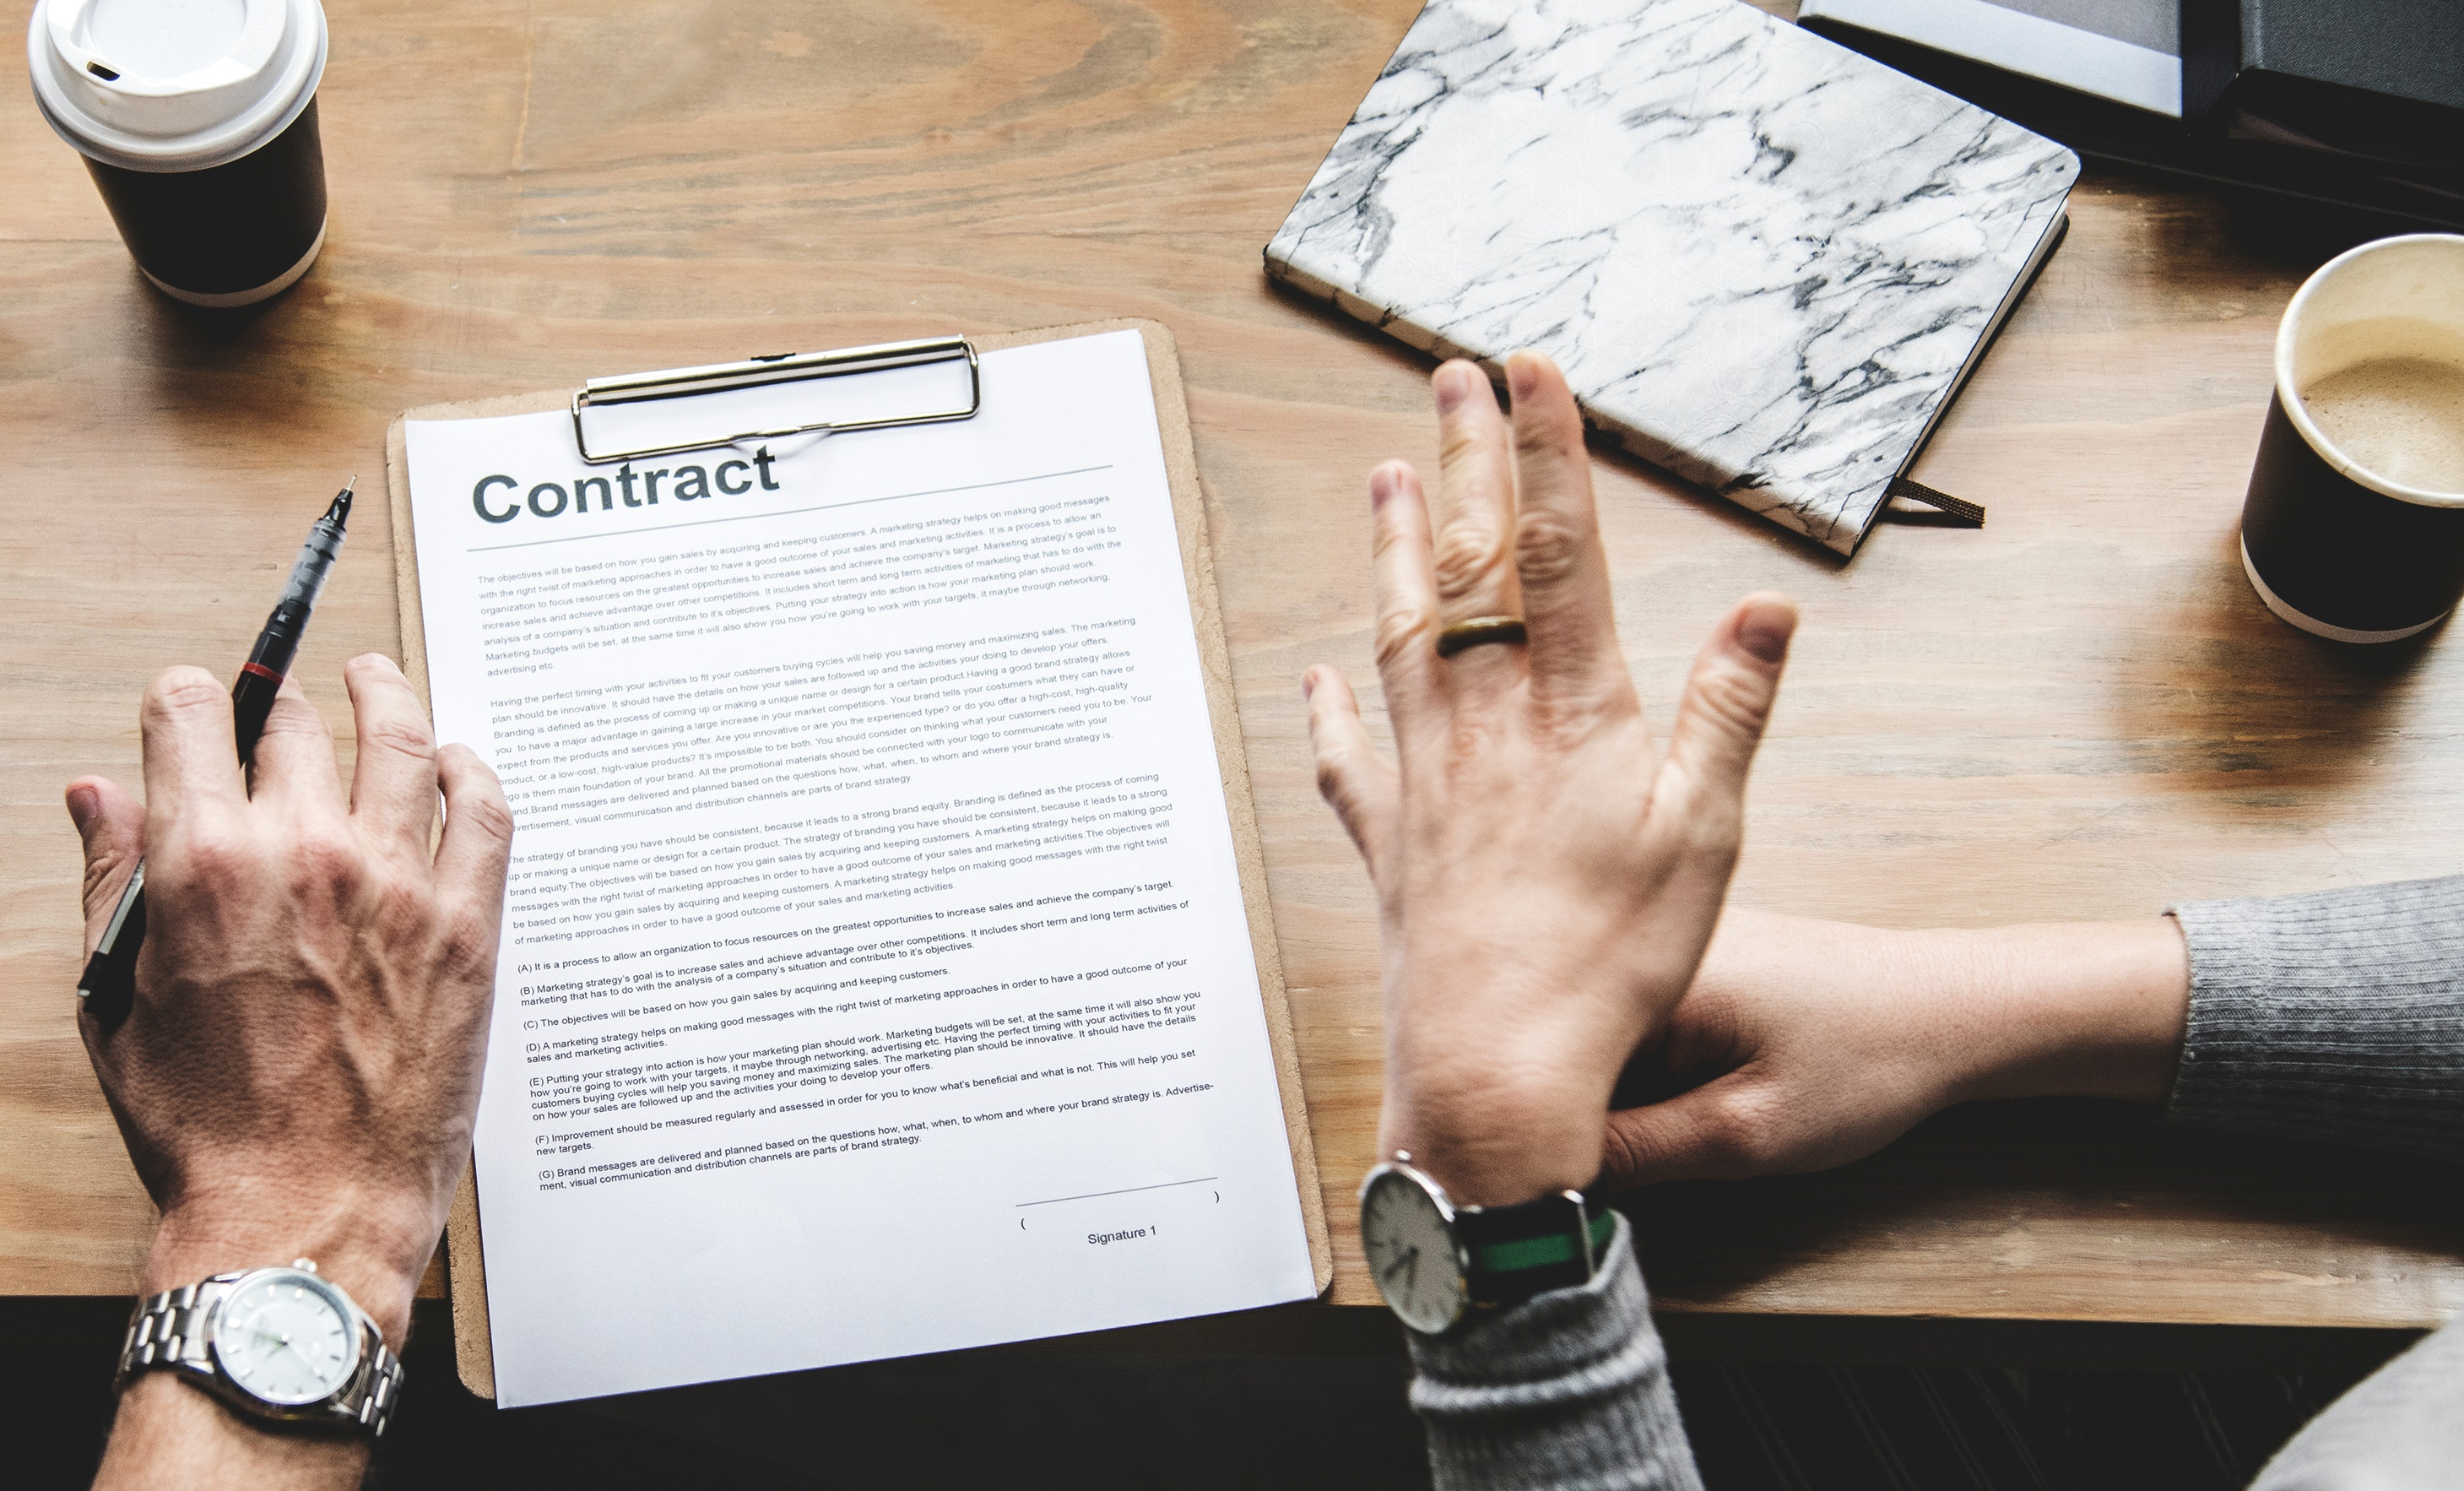 If you're not getting what you were looking for out of the rent to own deal, there are ways you can go about terminating the contract.